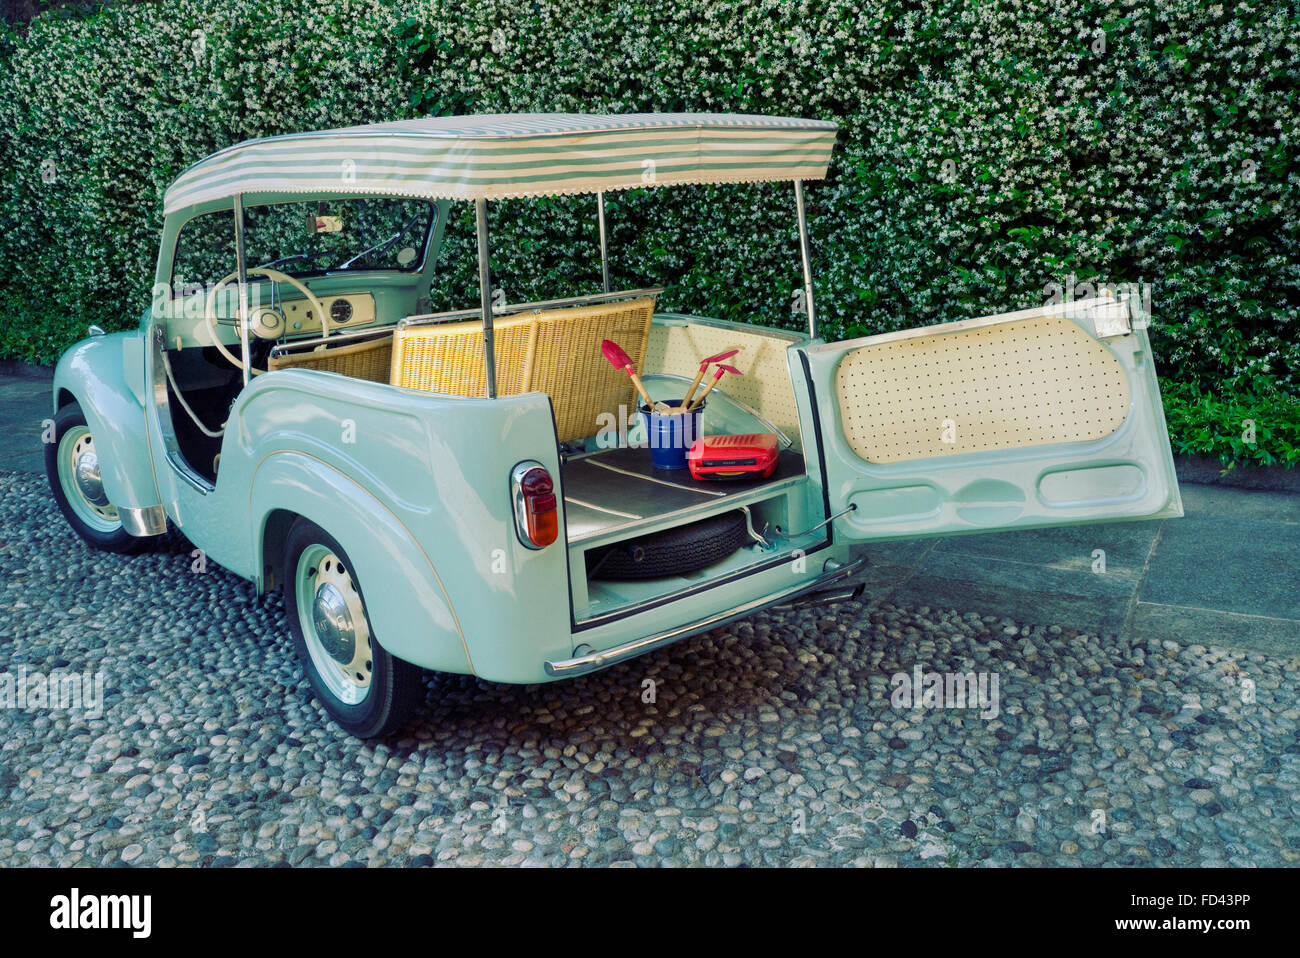 1954 Fiat Topolino Jolly beach car Stock Photo